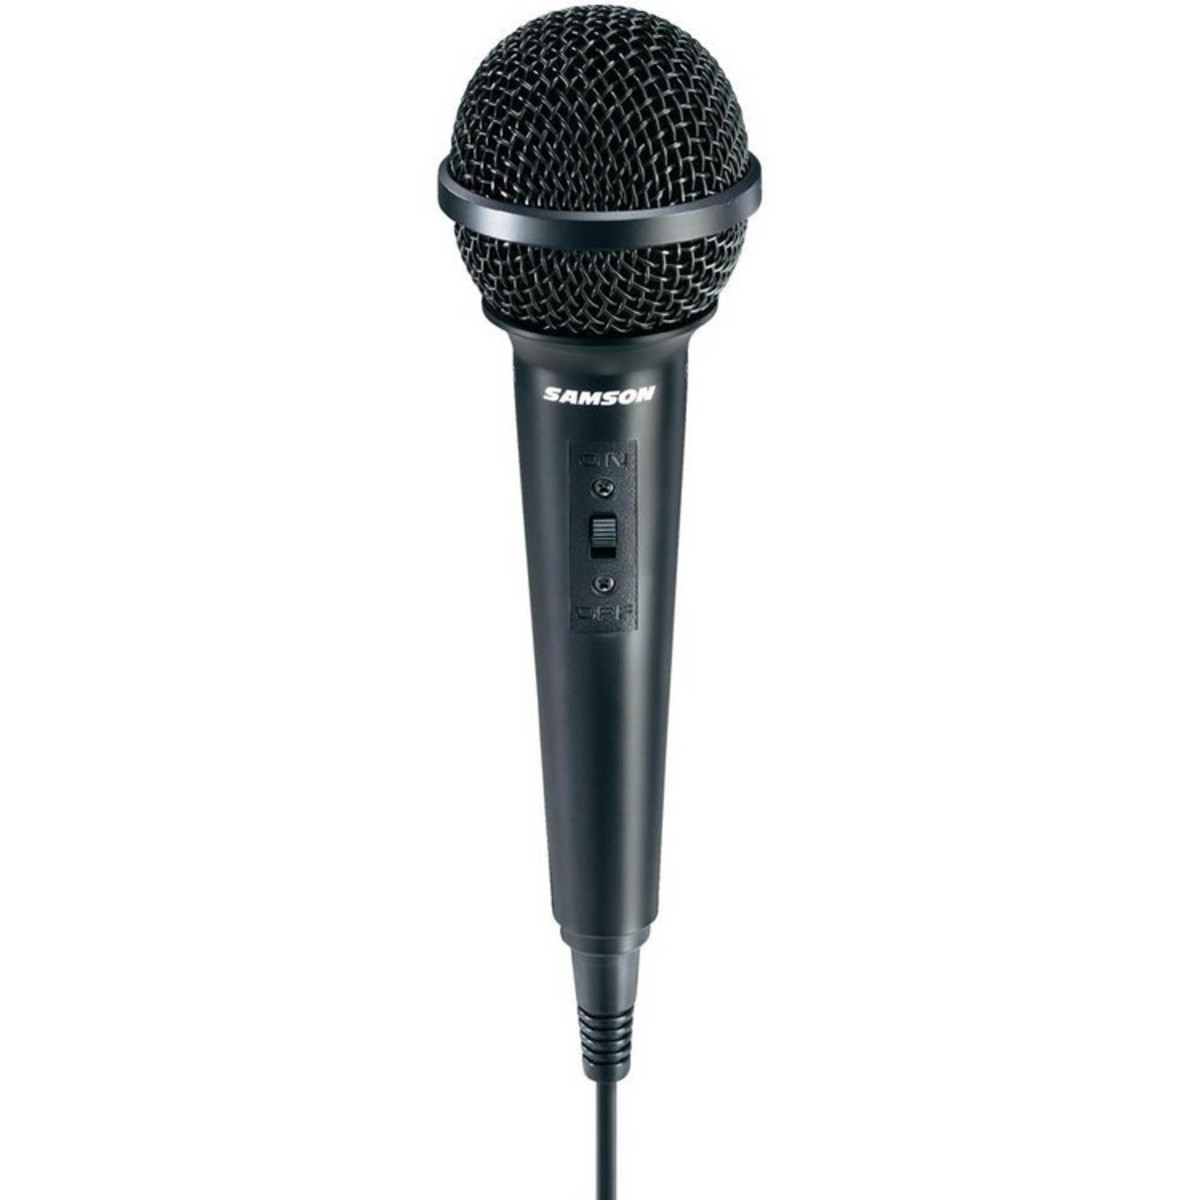 SAMSON R10S MICROPHONE DRIVER FOR WINDOWS 7